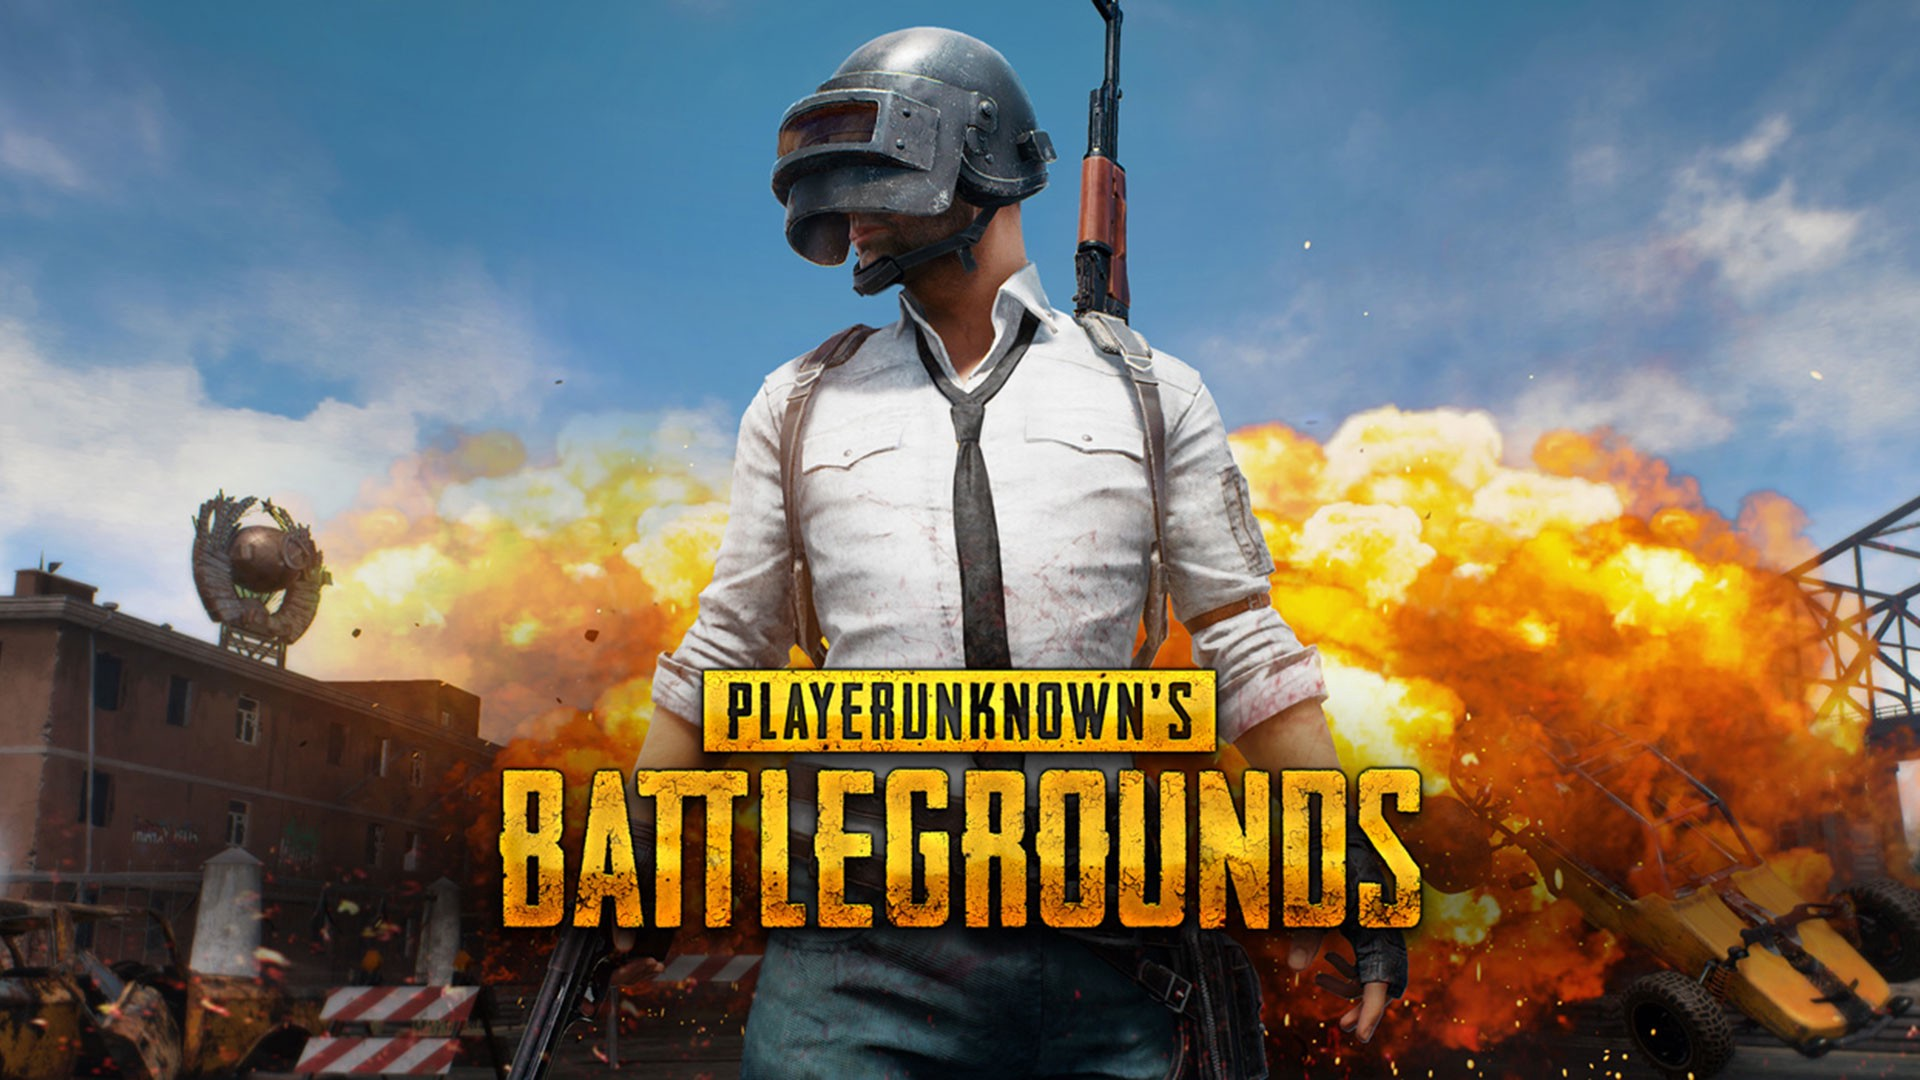 /how-to-play-pubg-on-aws-db2e75fa599b feature image